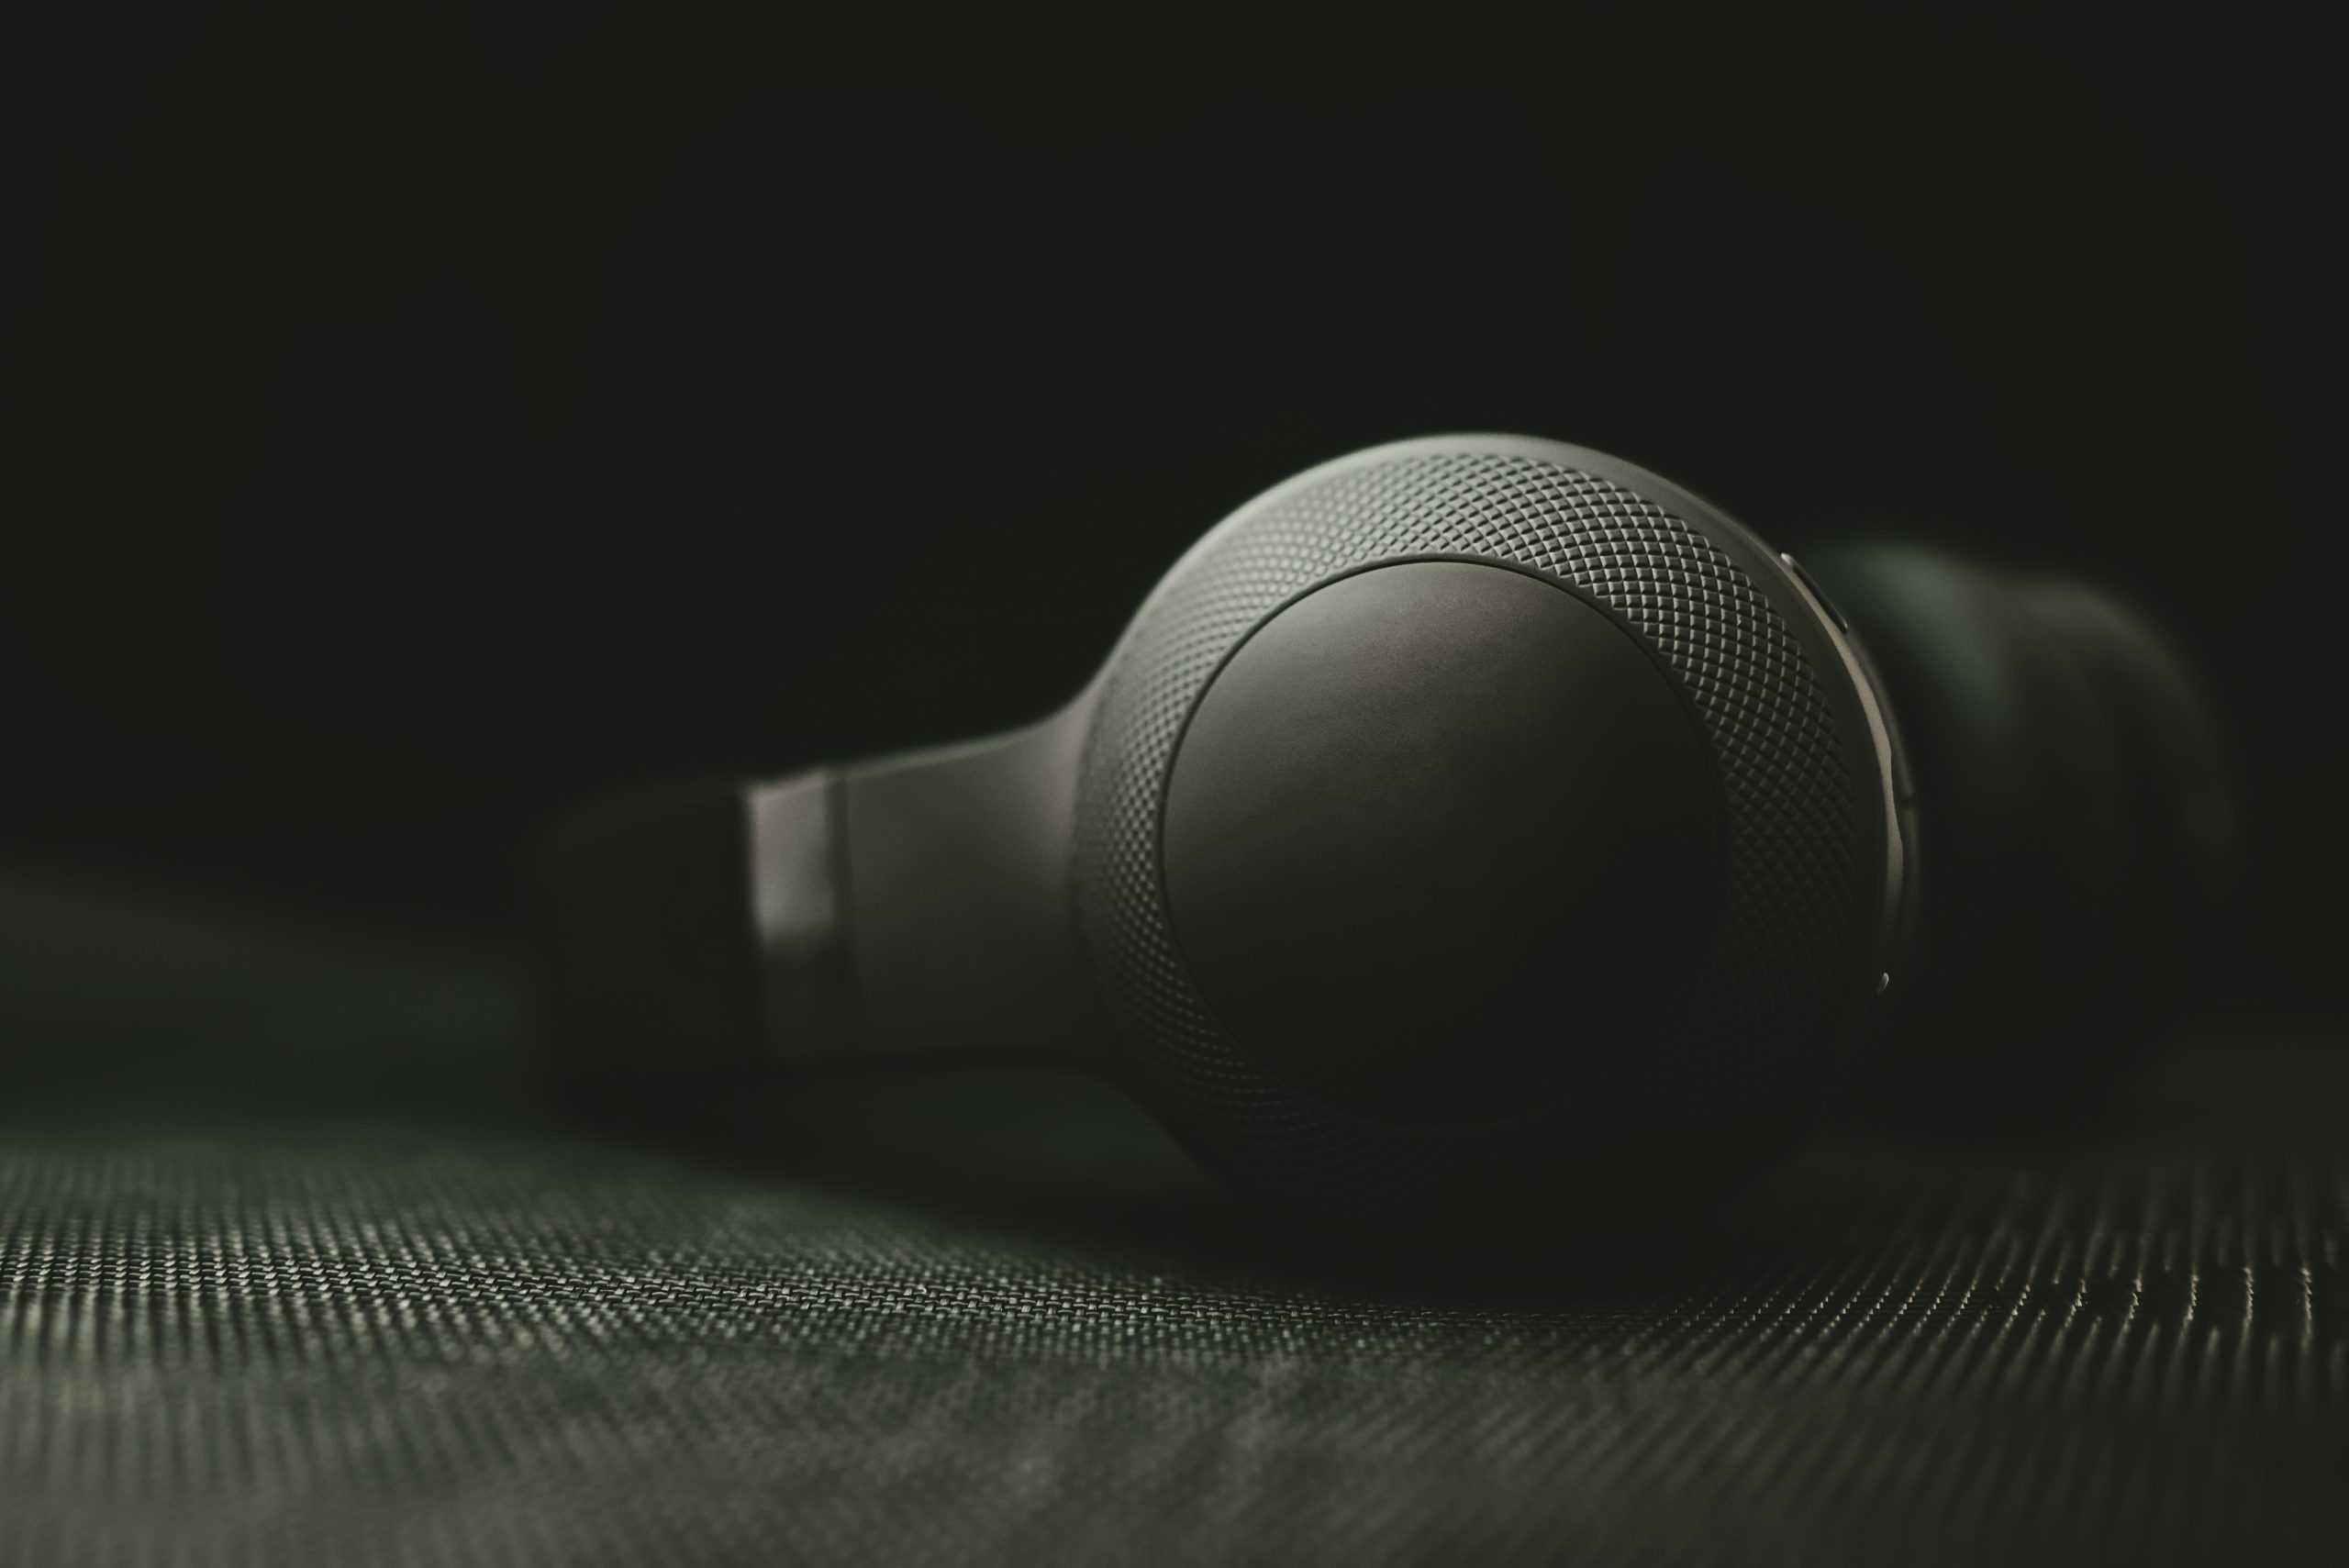 Black headphones in the dark. Small depth of field